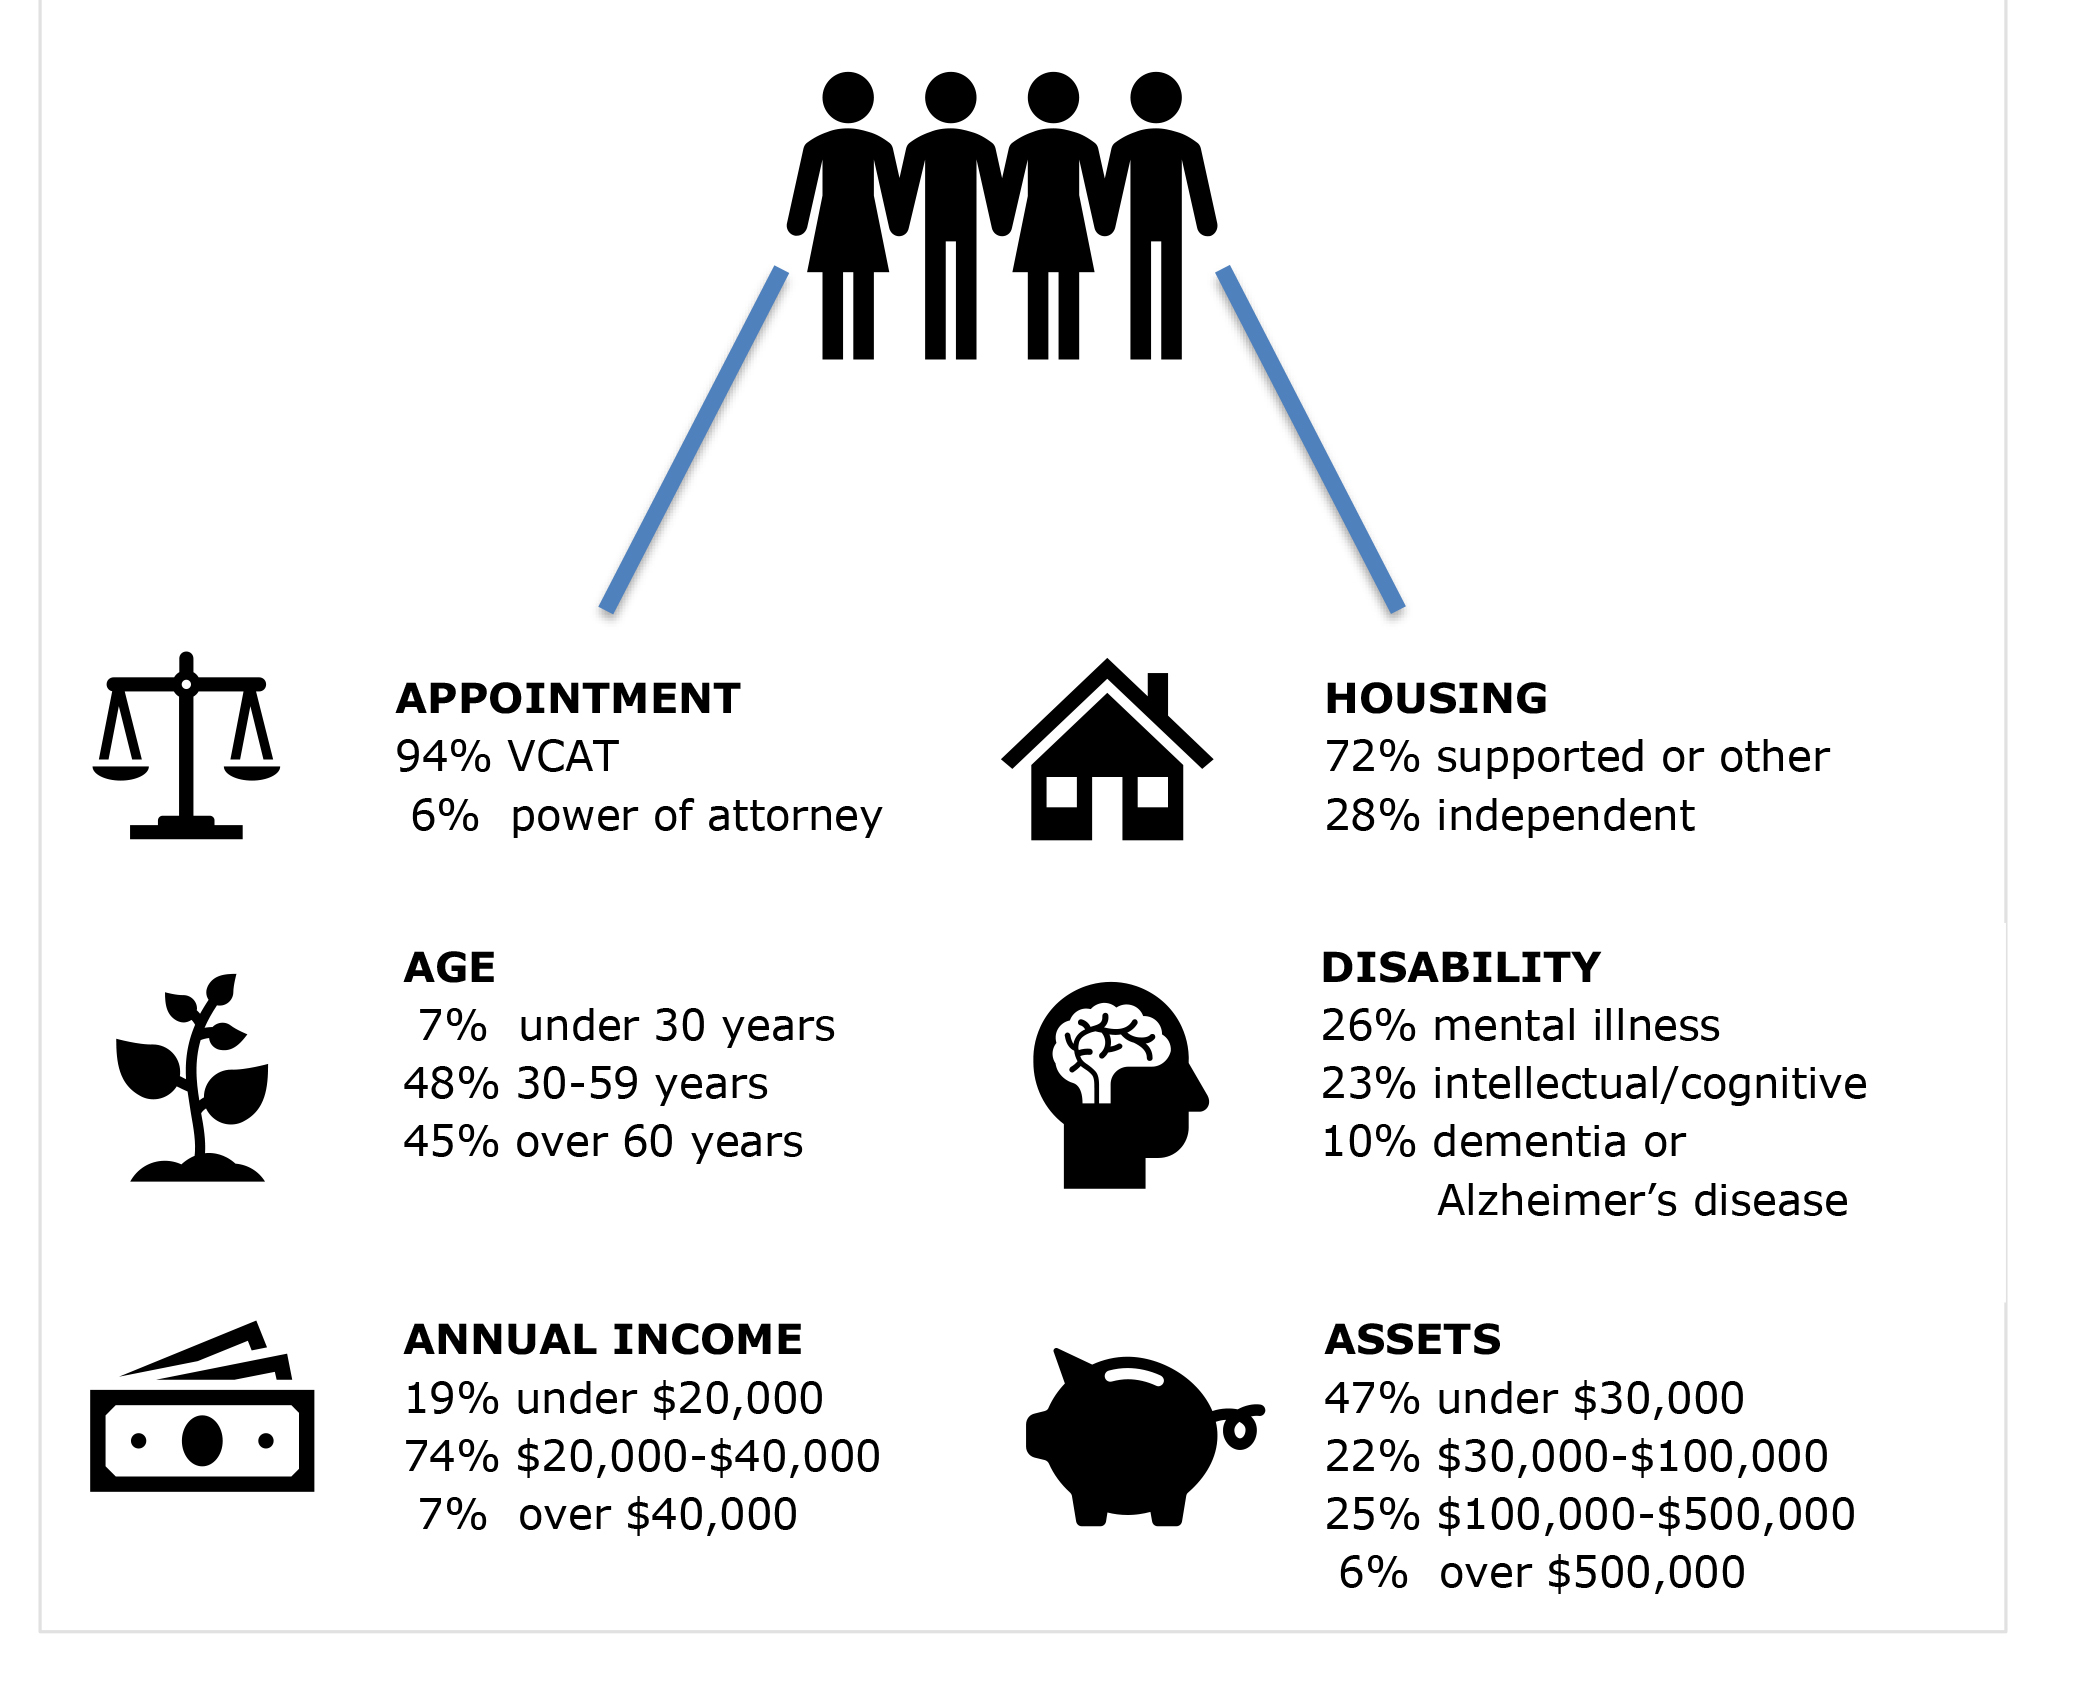 4 people at the top and under them are percentage break downs of appointments, housing, age, disability, annual income and assets